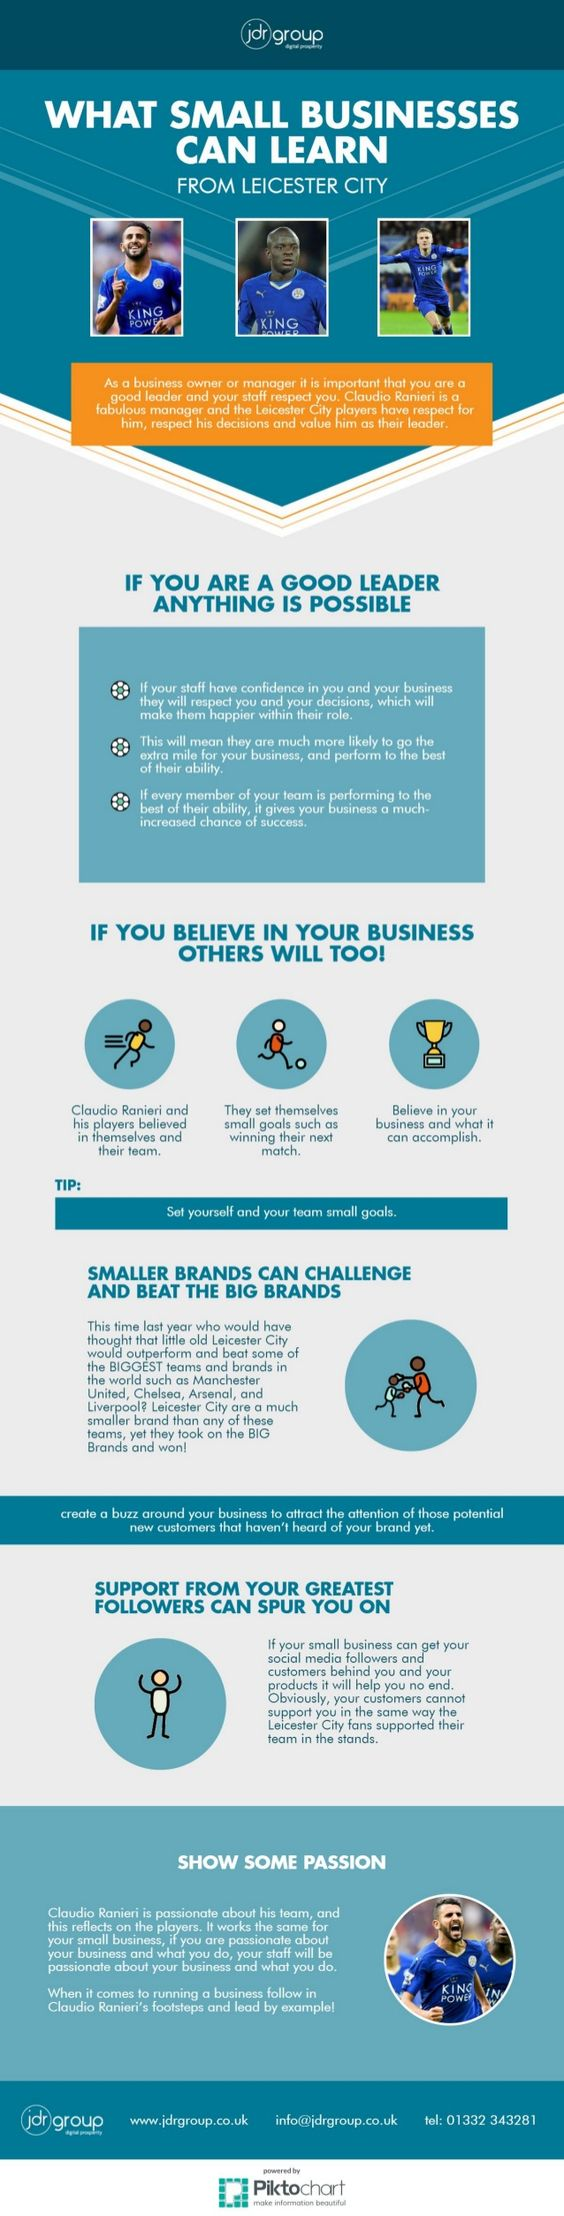 This infographic talks you through what Small Businesses can learn from Leicester City's magnificent win! We have also written an article on this subject you can check it out here http://blog.jdrgroup.co.uk/digital-prosperity-blog/what-small-businesses-can-learn-from-leicester-citys-magnificent-win